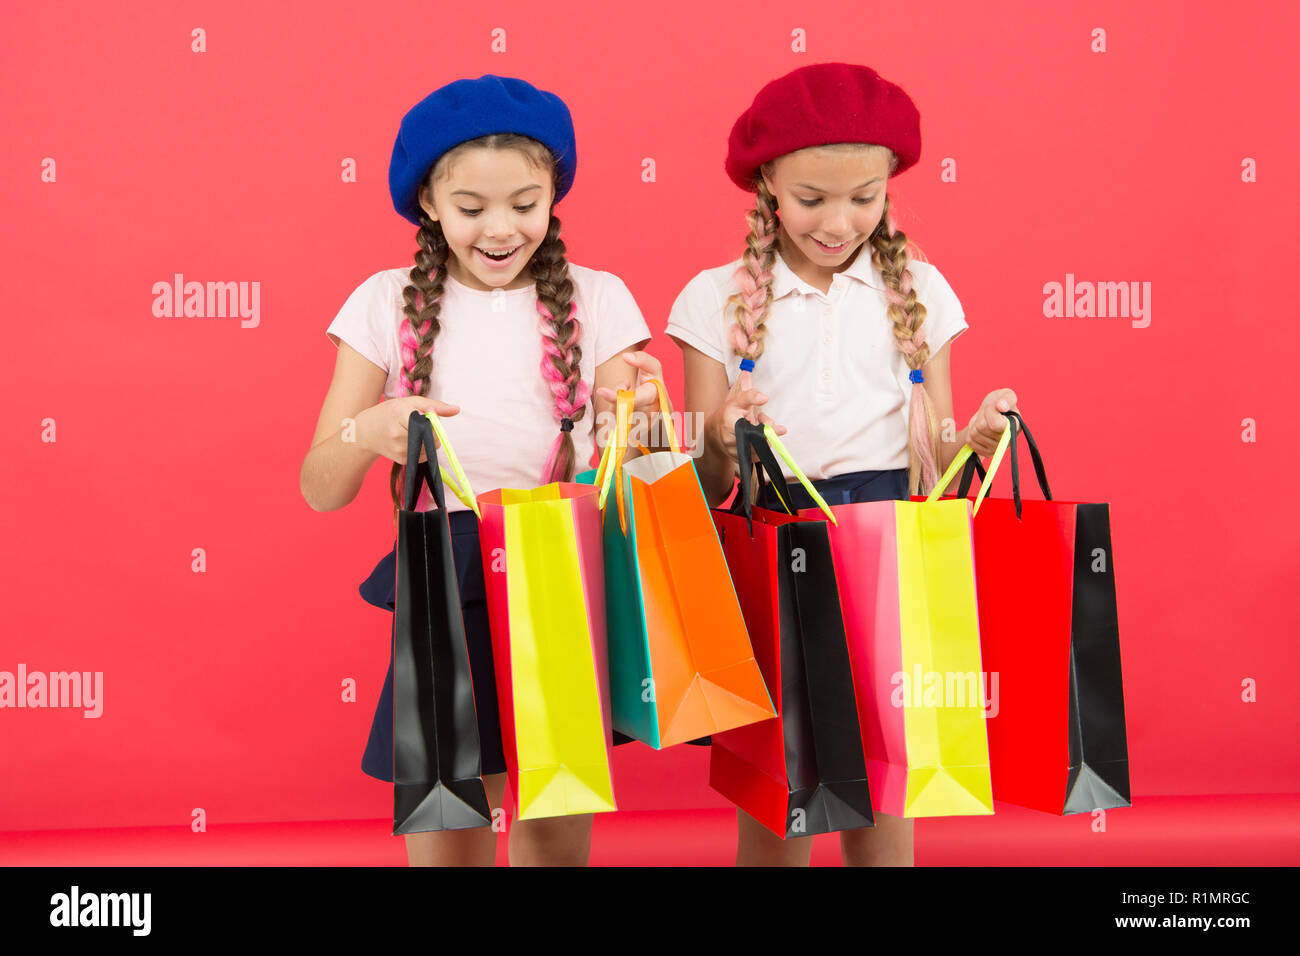 Children satisfied by shopping red background obsessed with shopping and clothing malls shopaholic concept shopping become fun with best friends